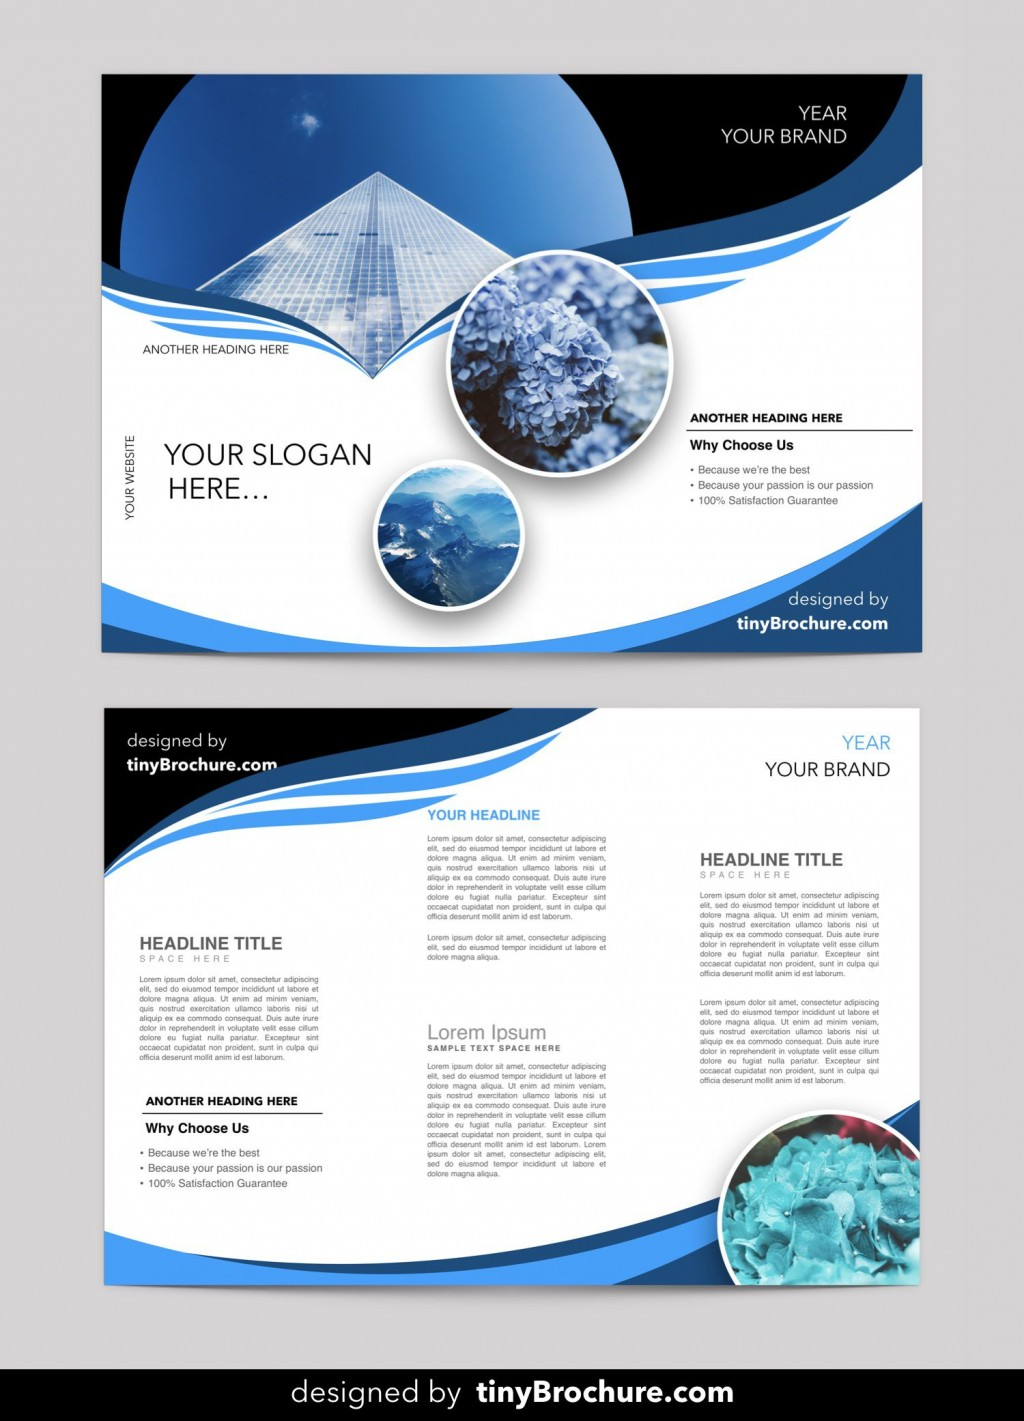 002 Unforgettable Free Word Flyer Template High Resolution  Templates M Download EventLarge